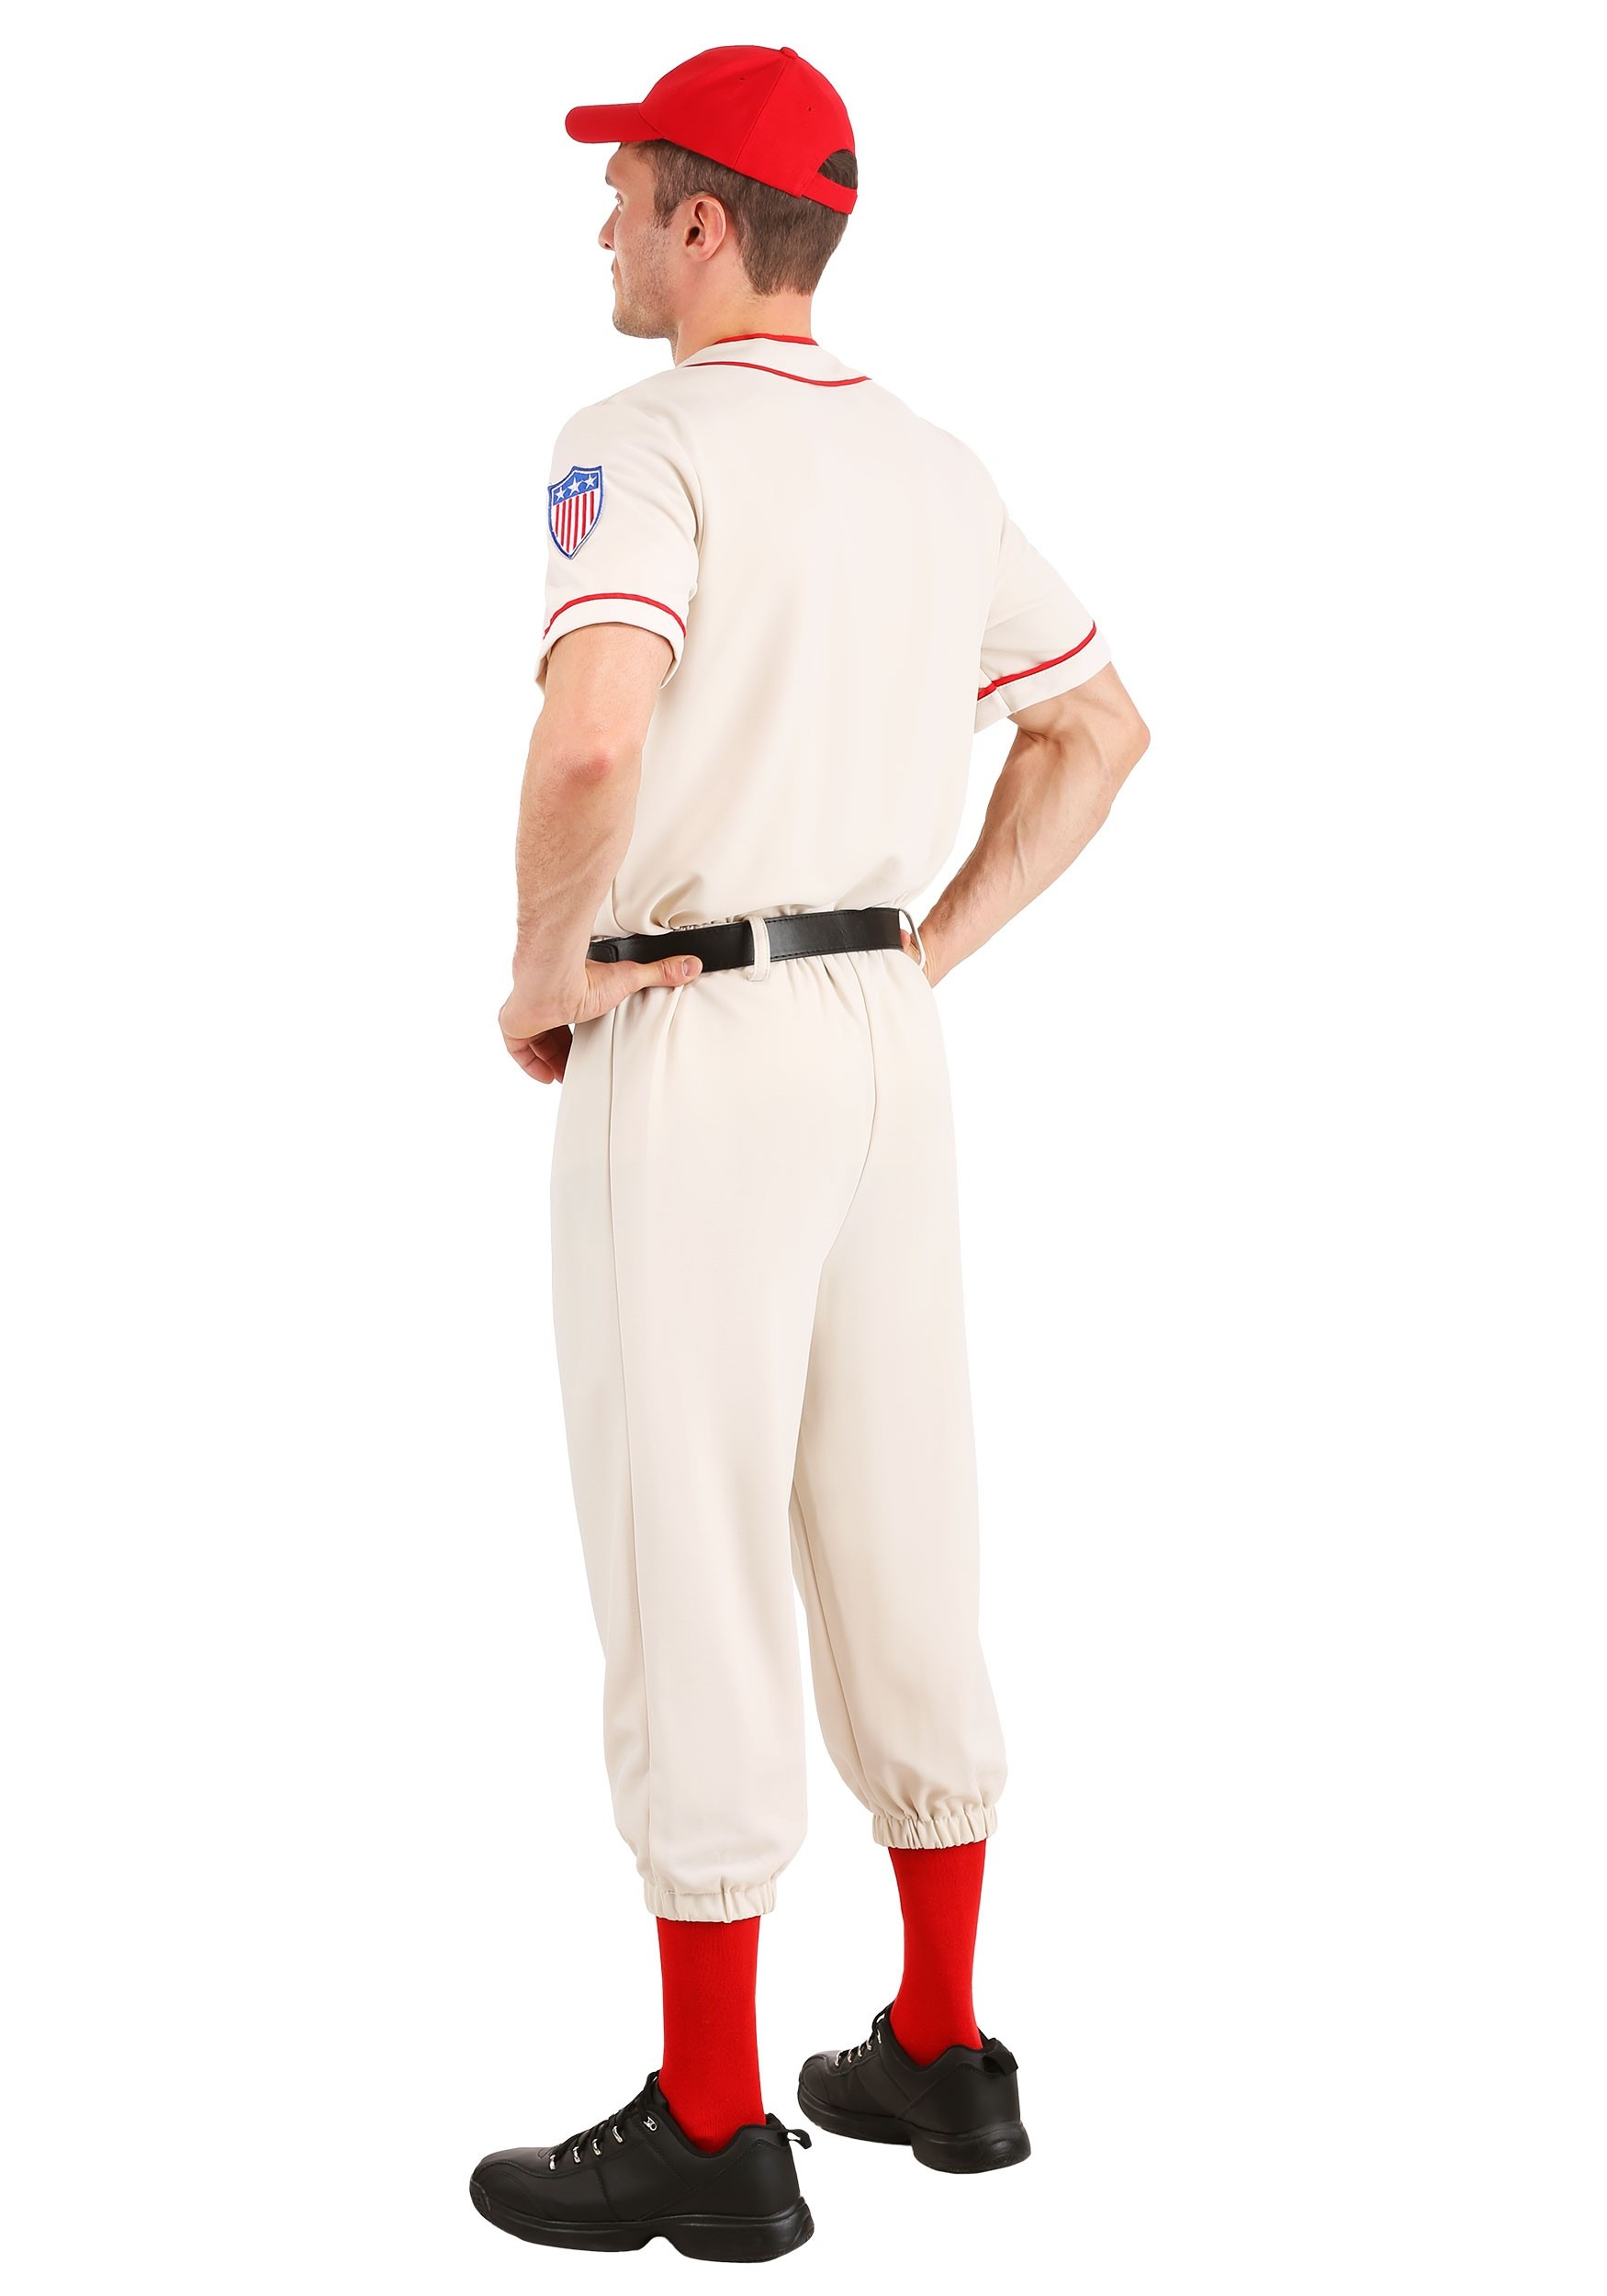 Toddler A League of Their Own Jimmy Dugan Coach Costume Kids Baseball Player Costume